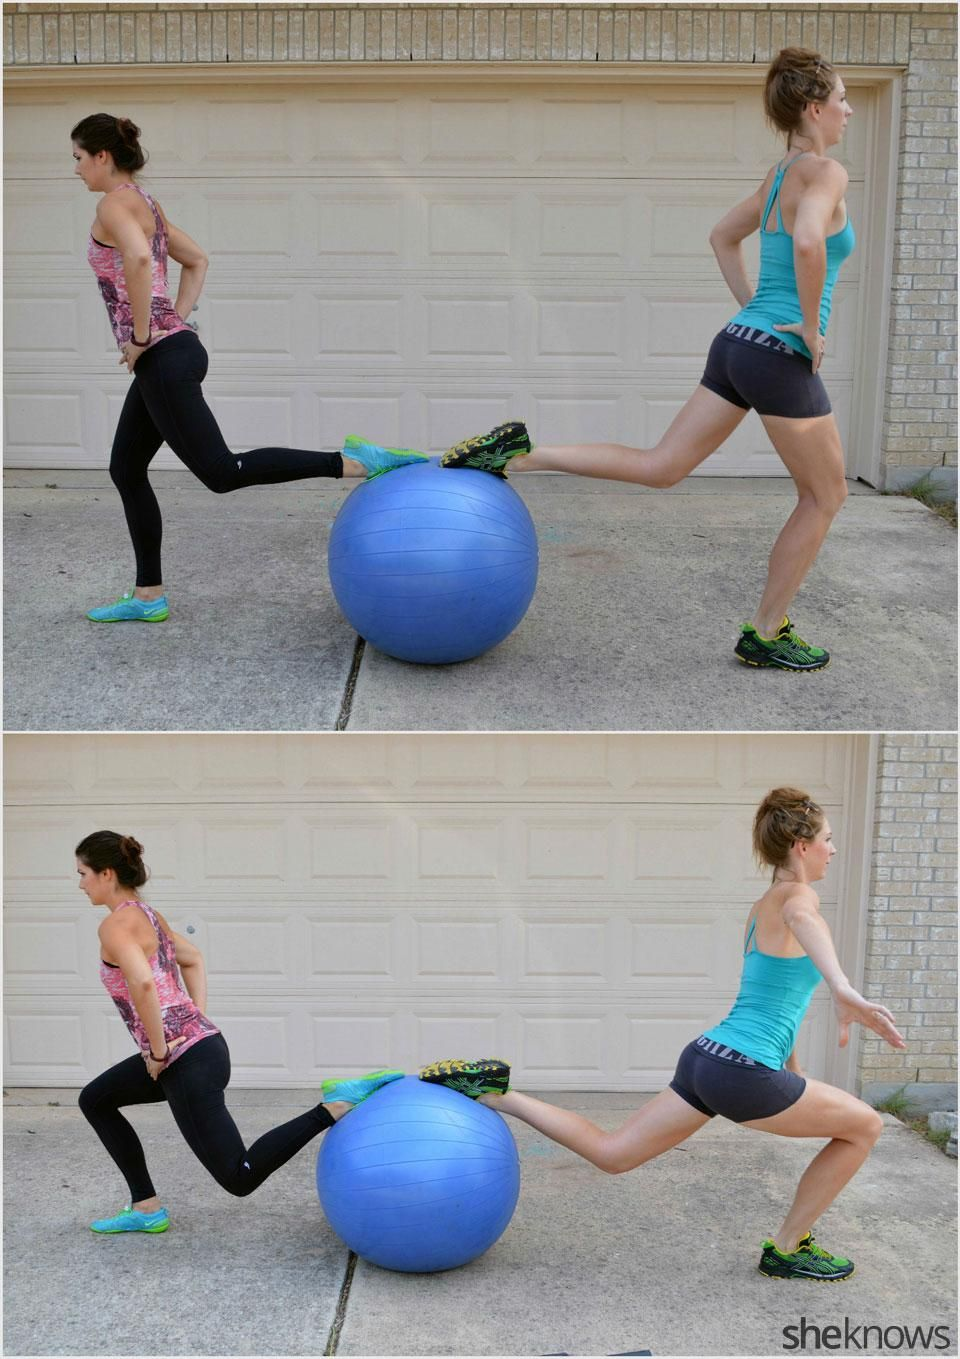 Hanging knee raises with medicine ball - How To Do A Stability Ball Lunge With An Exercise Partner